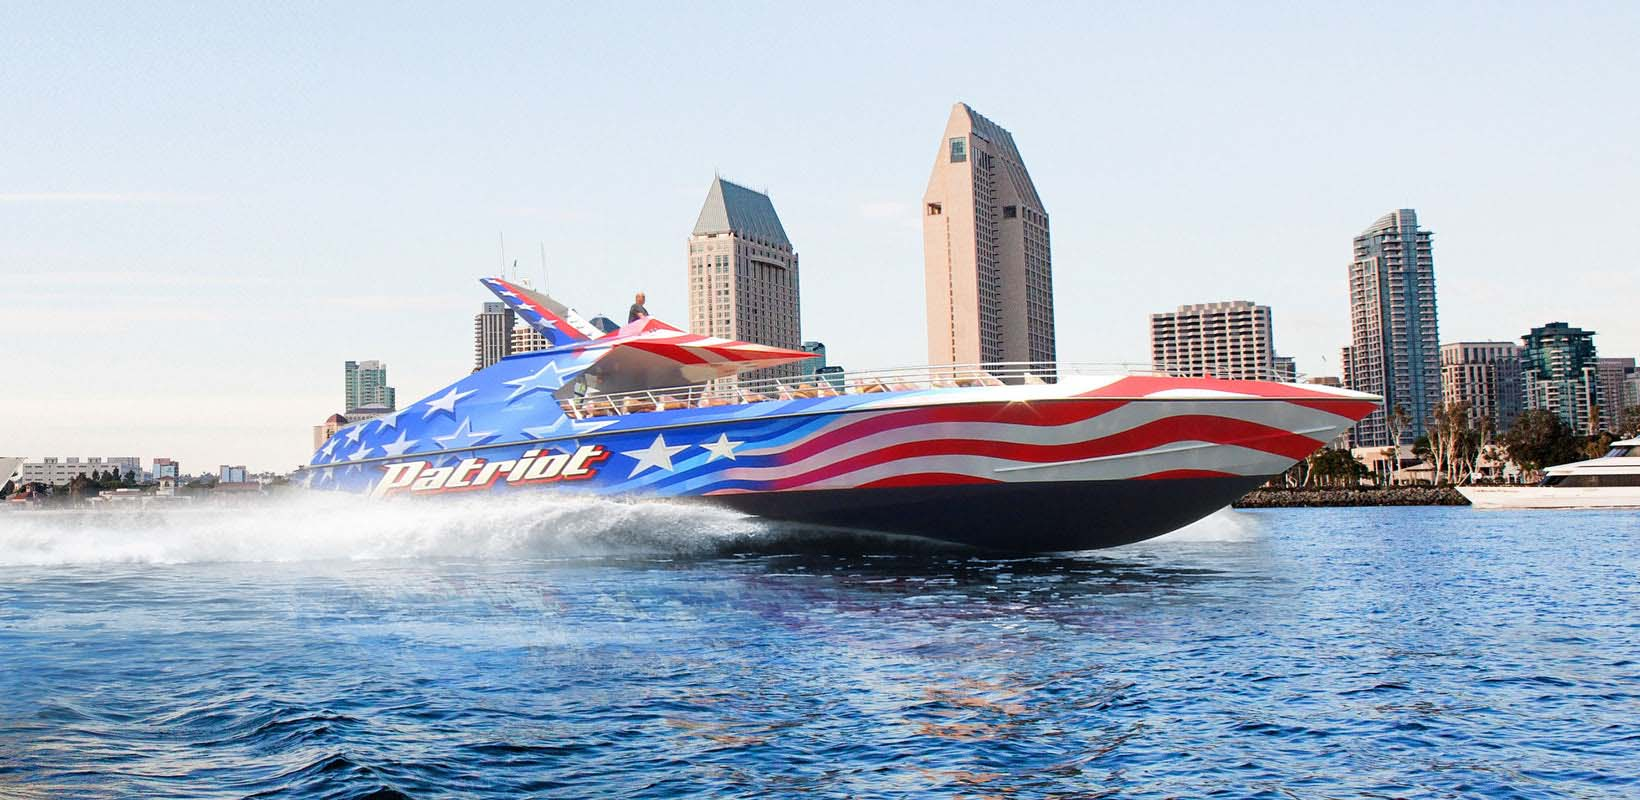 San Diego Patriot Jet Boat Thrill Ride